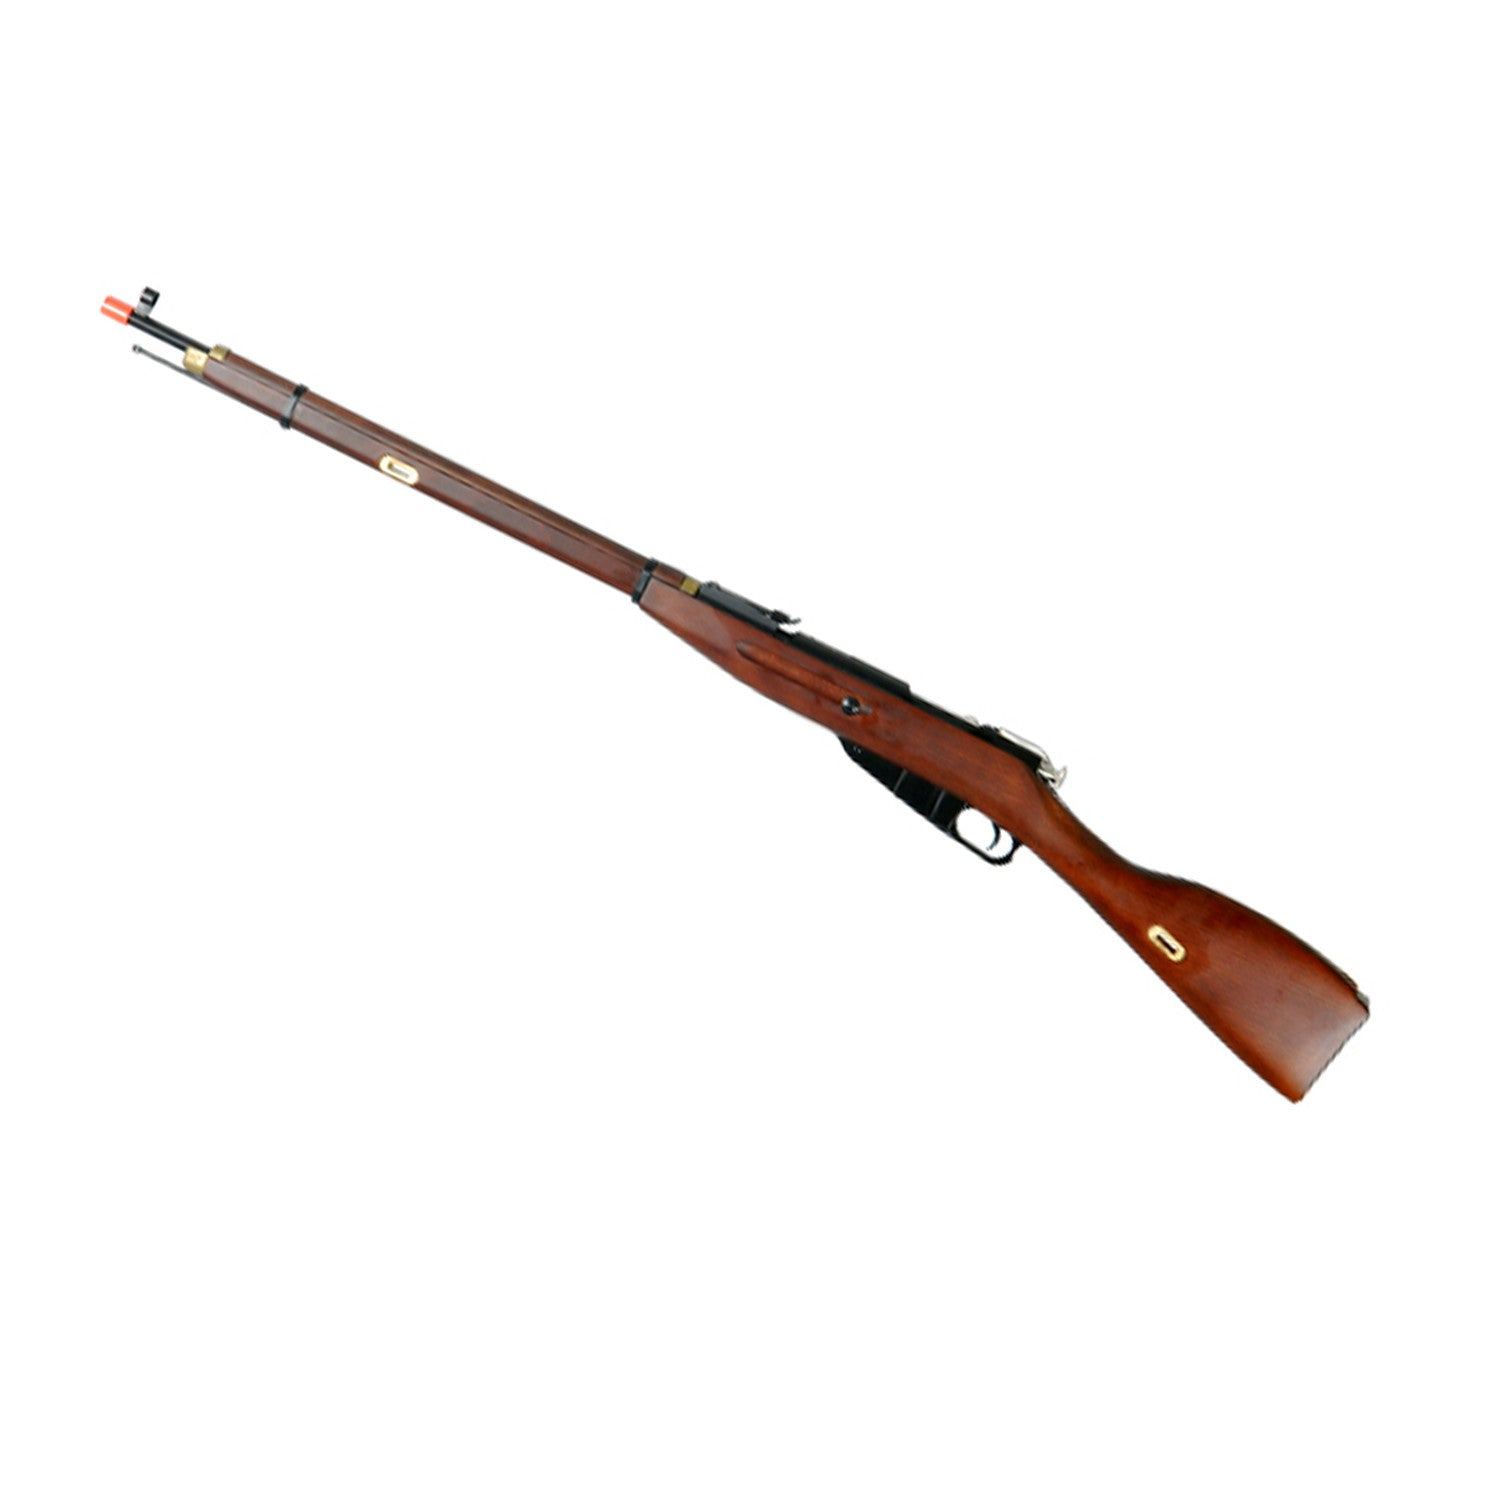 Mosin Nagant Bolt Action Sniper Rifle, Real Wood